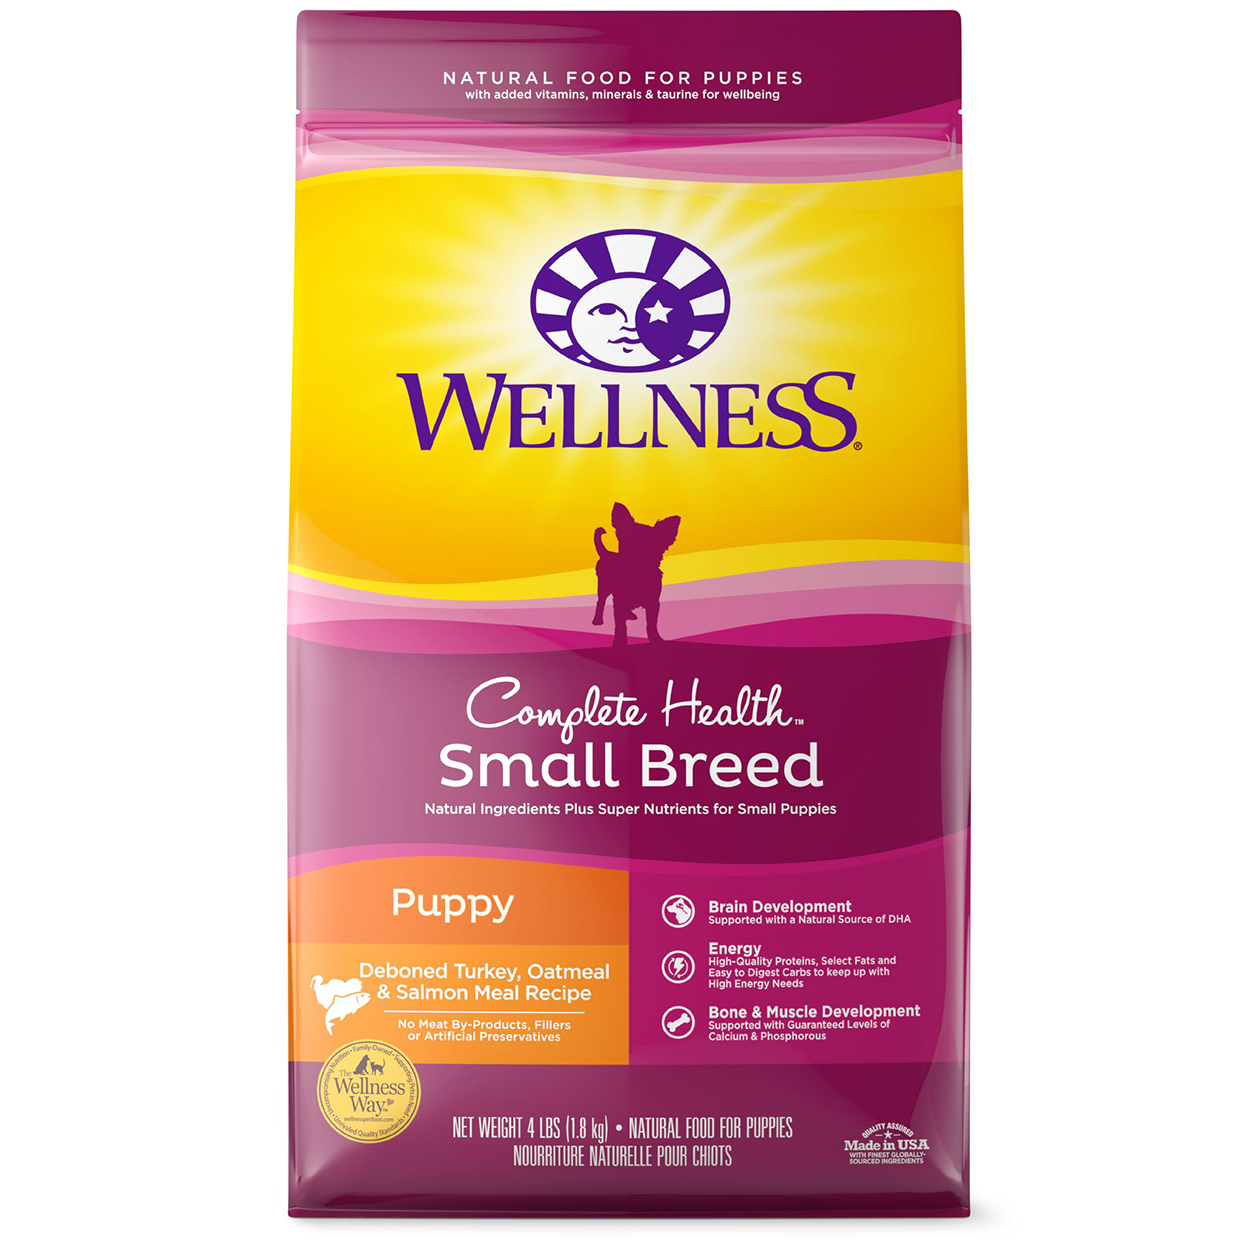 Wellness Complete Health Small Breed Puppy Food - Natural